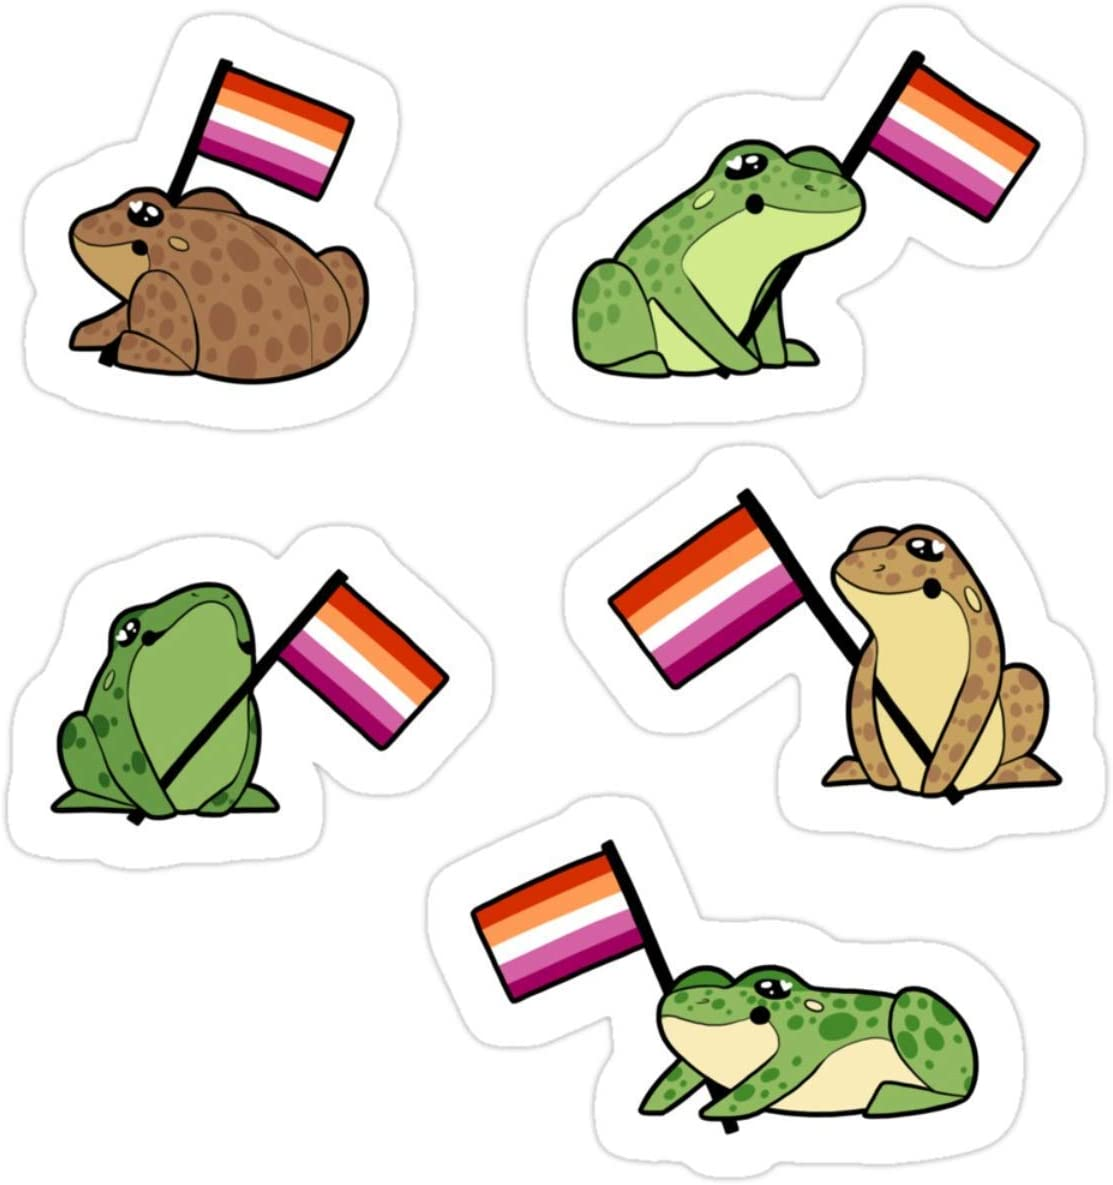 Stickers Lesbian Frog Pride Stickers Decals Bag Laptop 3x4 Inch Backpack (3 Pcs/Pack)